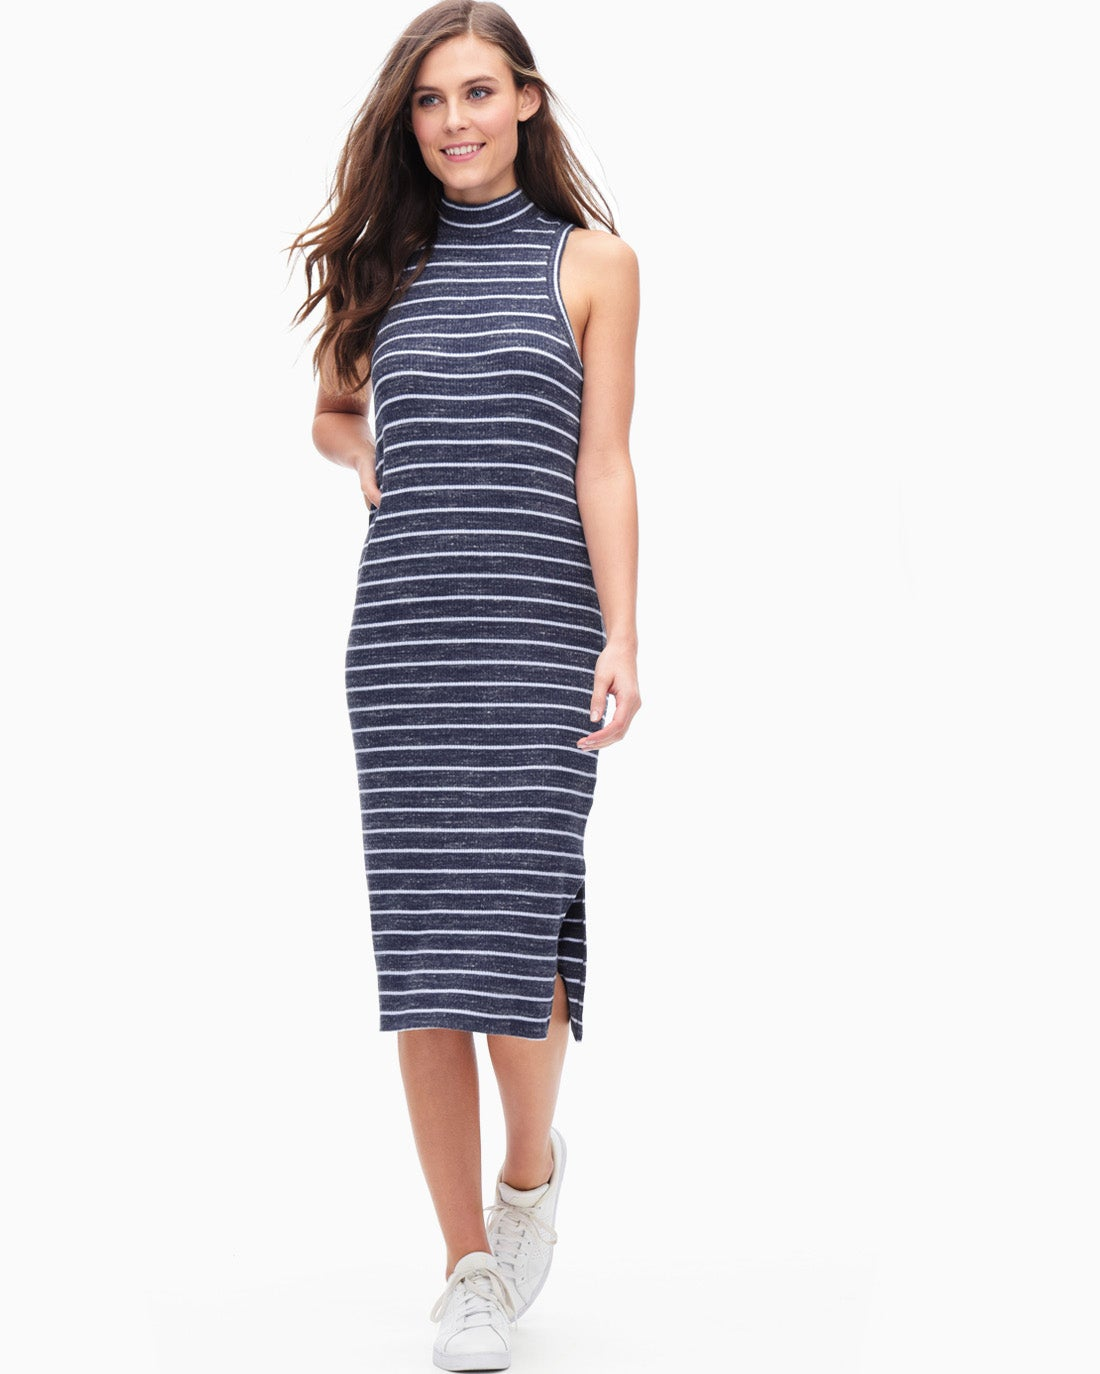 Splendid Women's Striped Rib Dress